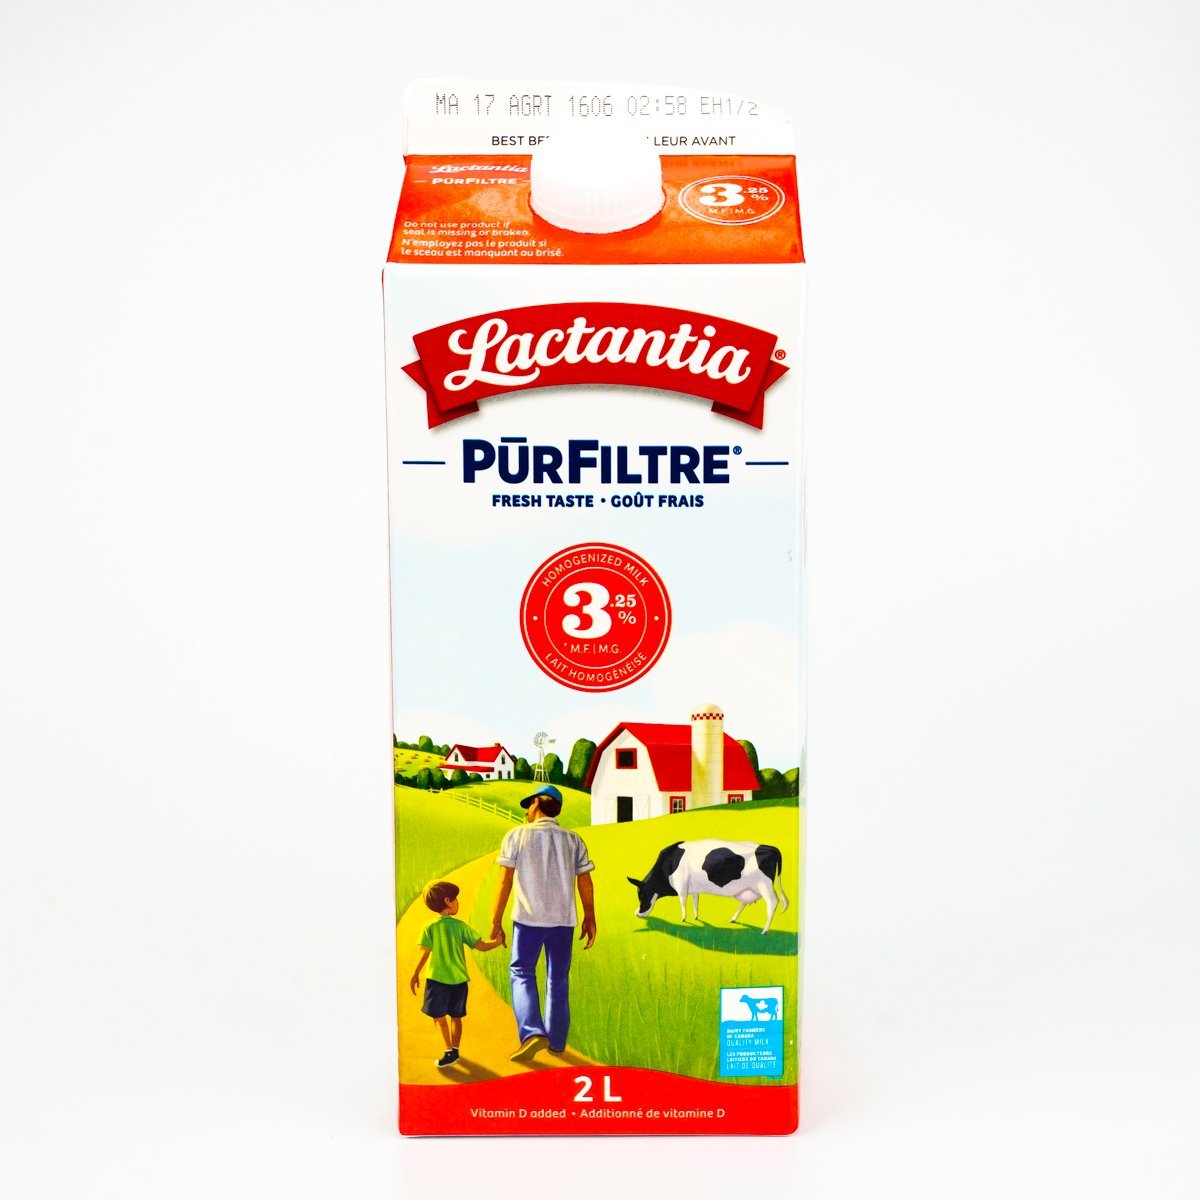 Lactantia 3.25%Homogenized Milk